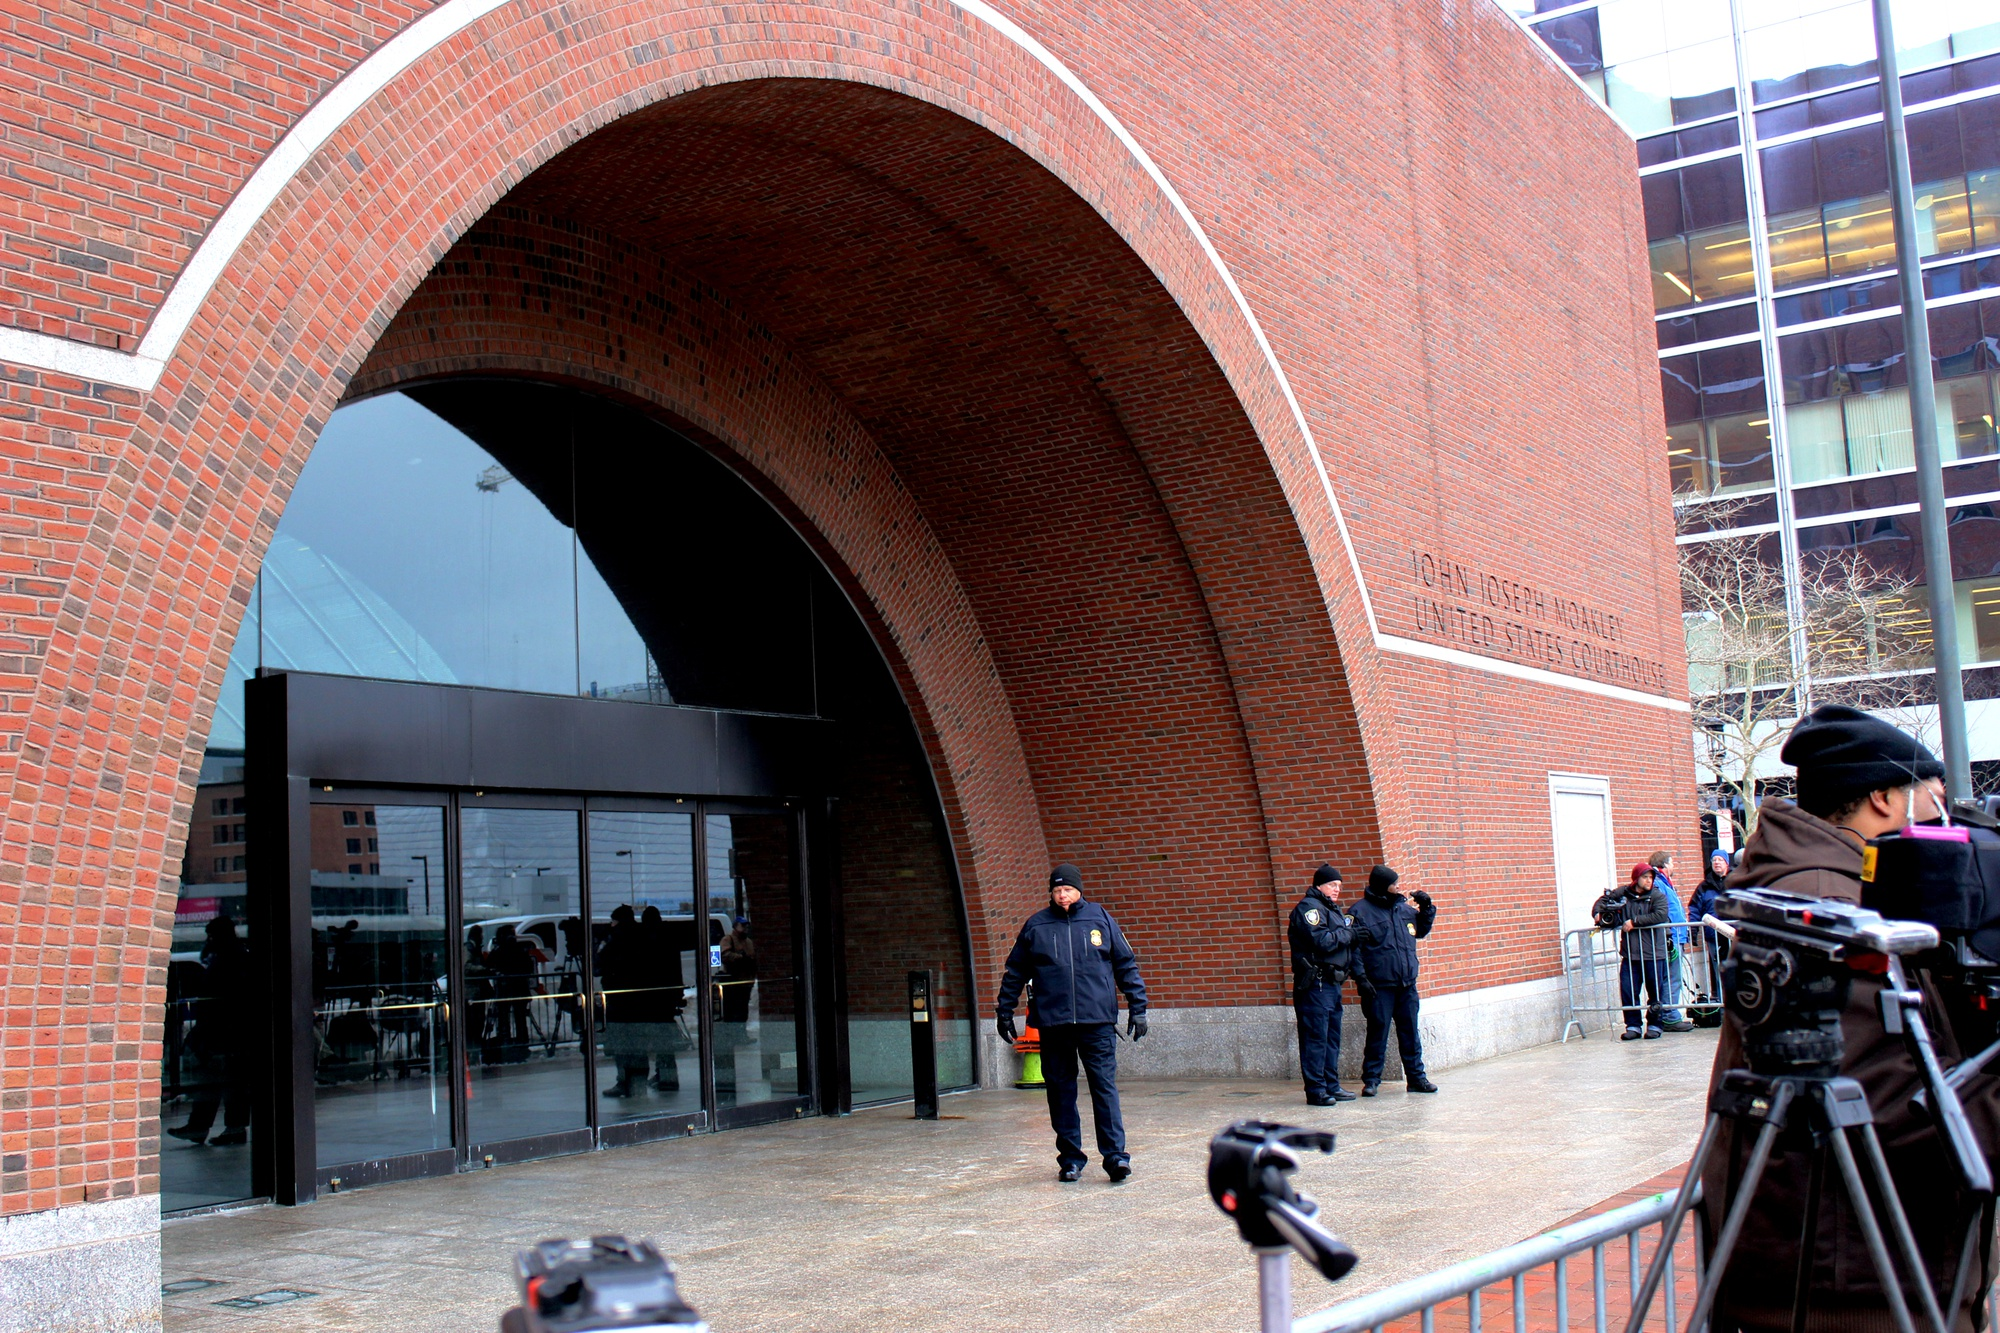 The trial of the alleged Boston Marathon bomber Dzhokhar Tsarnaev began on Wednesday morning at the John Joseph Moakley U.S. Courthouse in South Boston. The trial is expected to last several months as the defense attempts to persuade the jurors to forgo the death penalty.